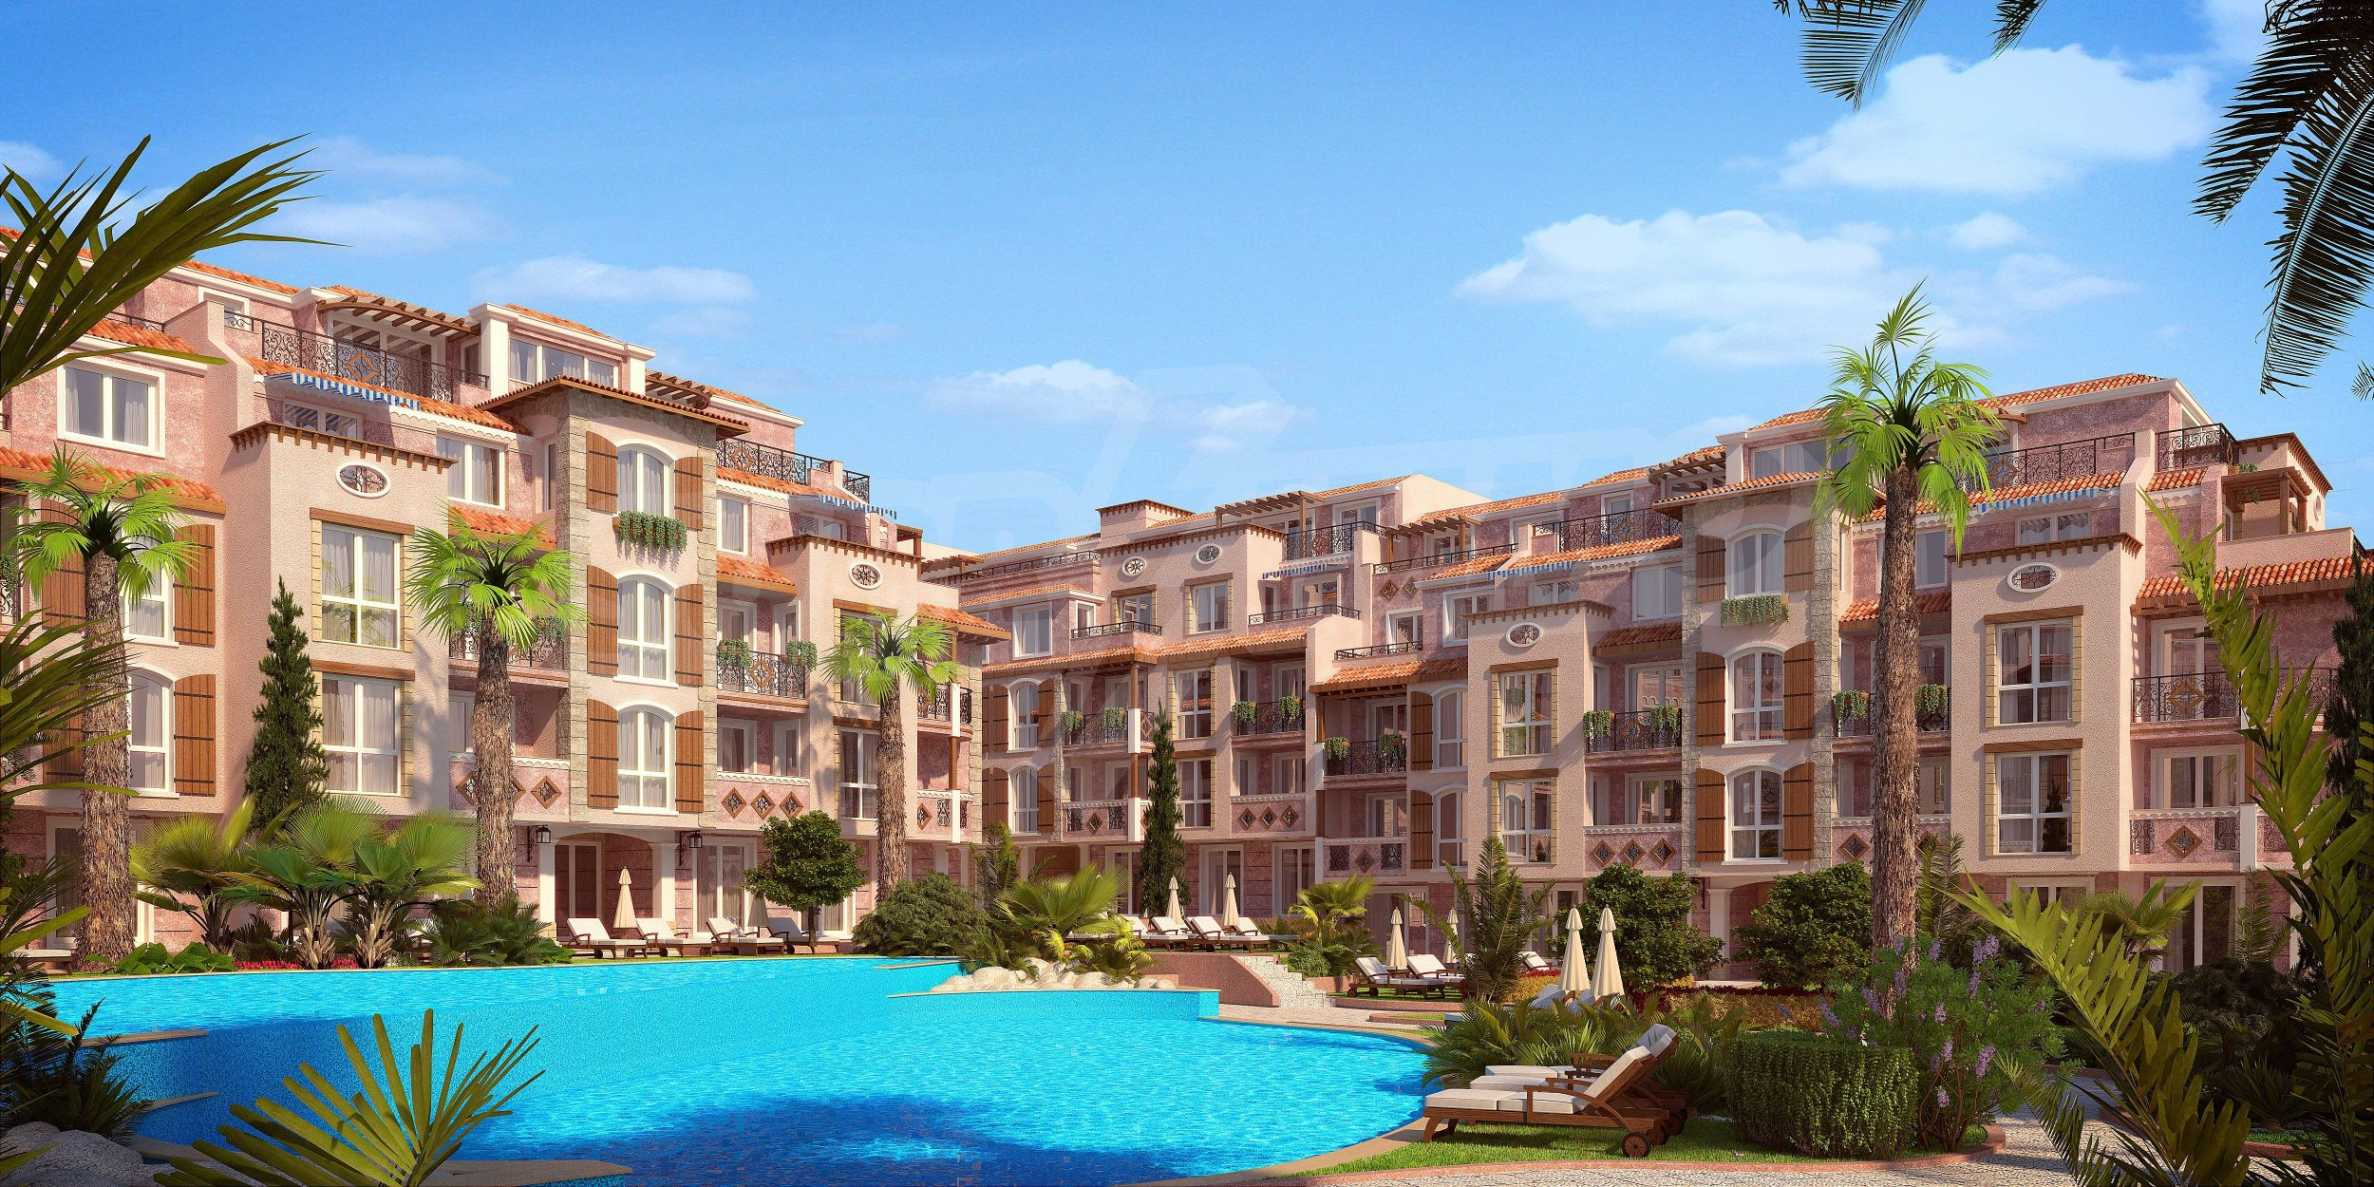 Saint John 2 - first-rate apartments for sale by the Kavatsi Beach 27